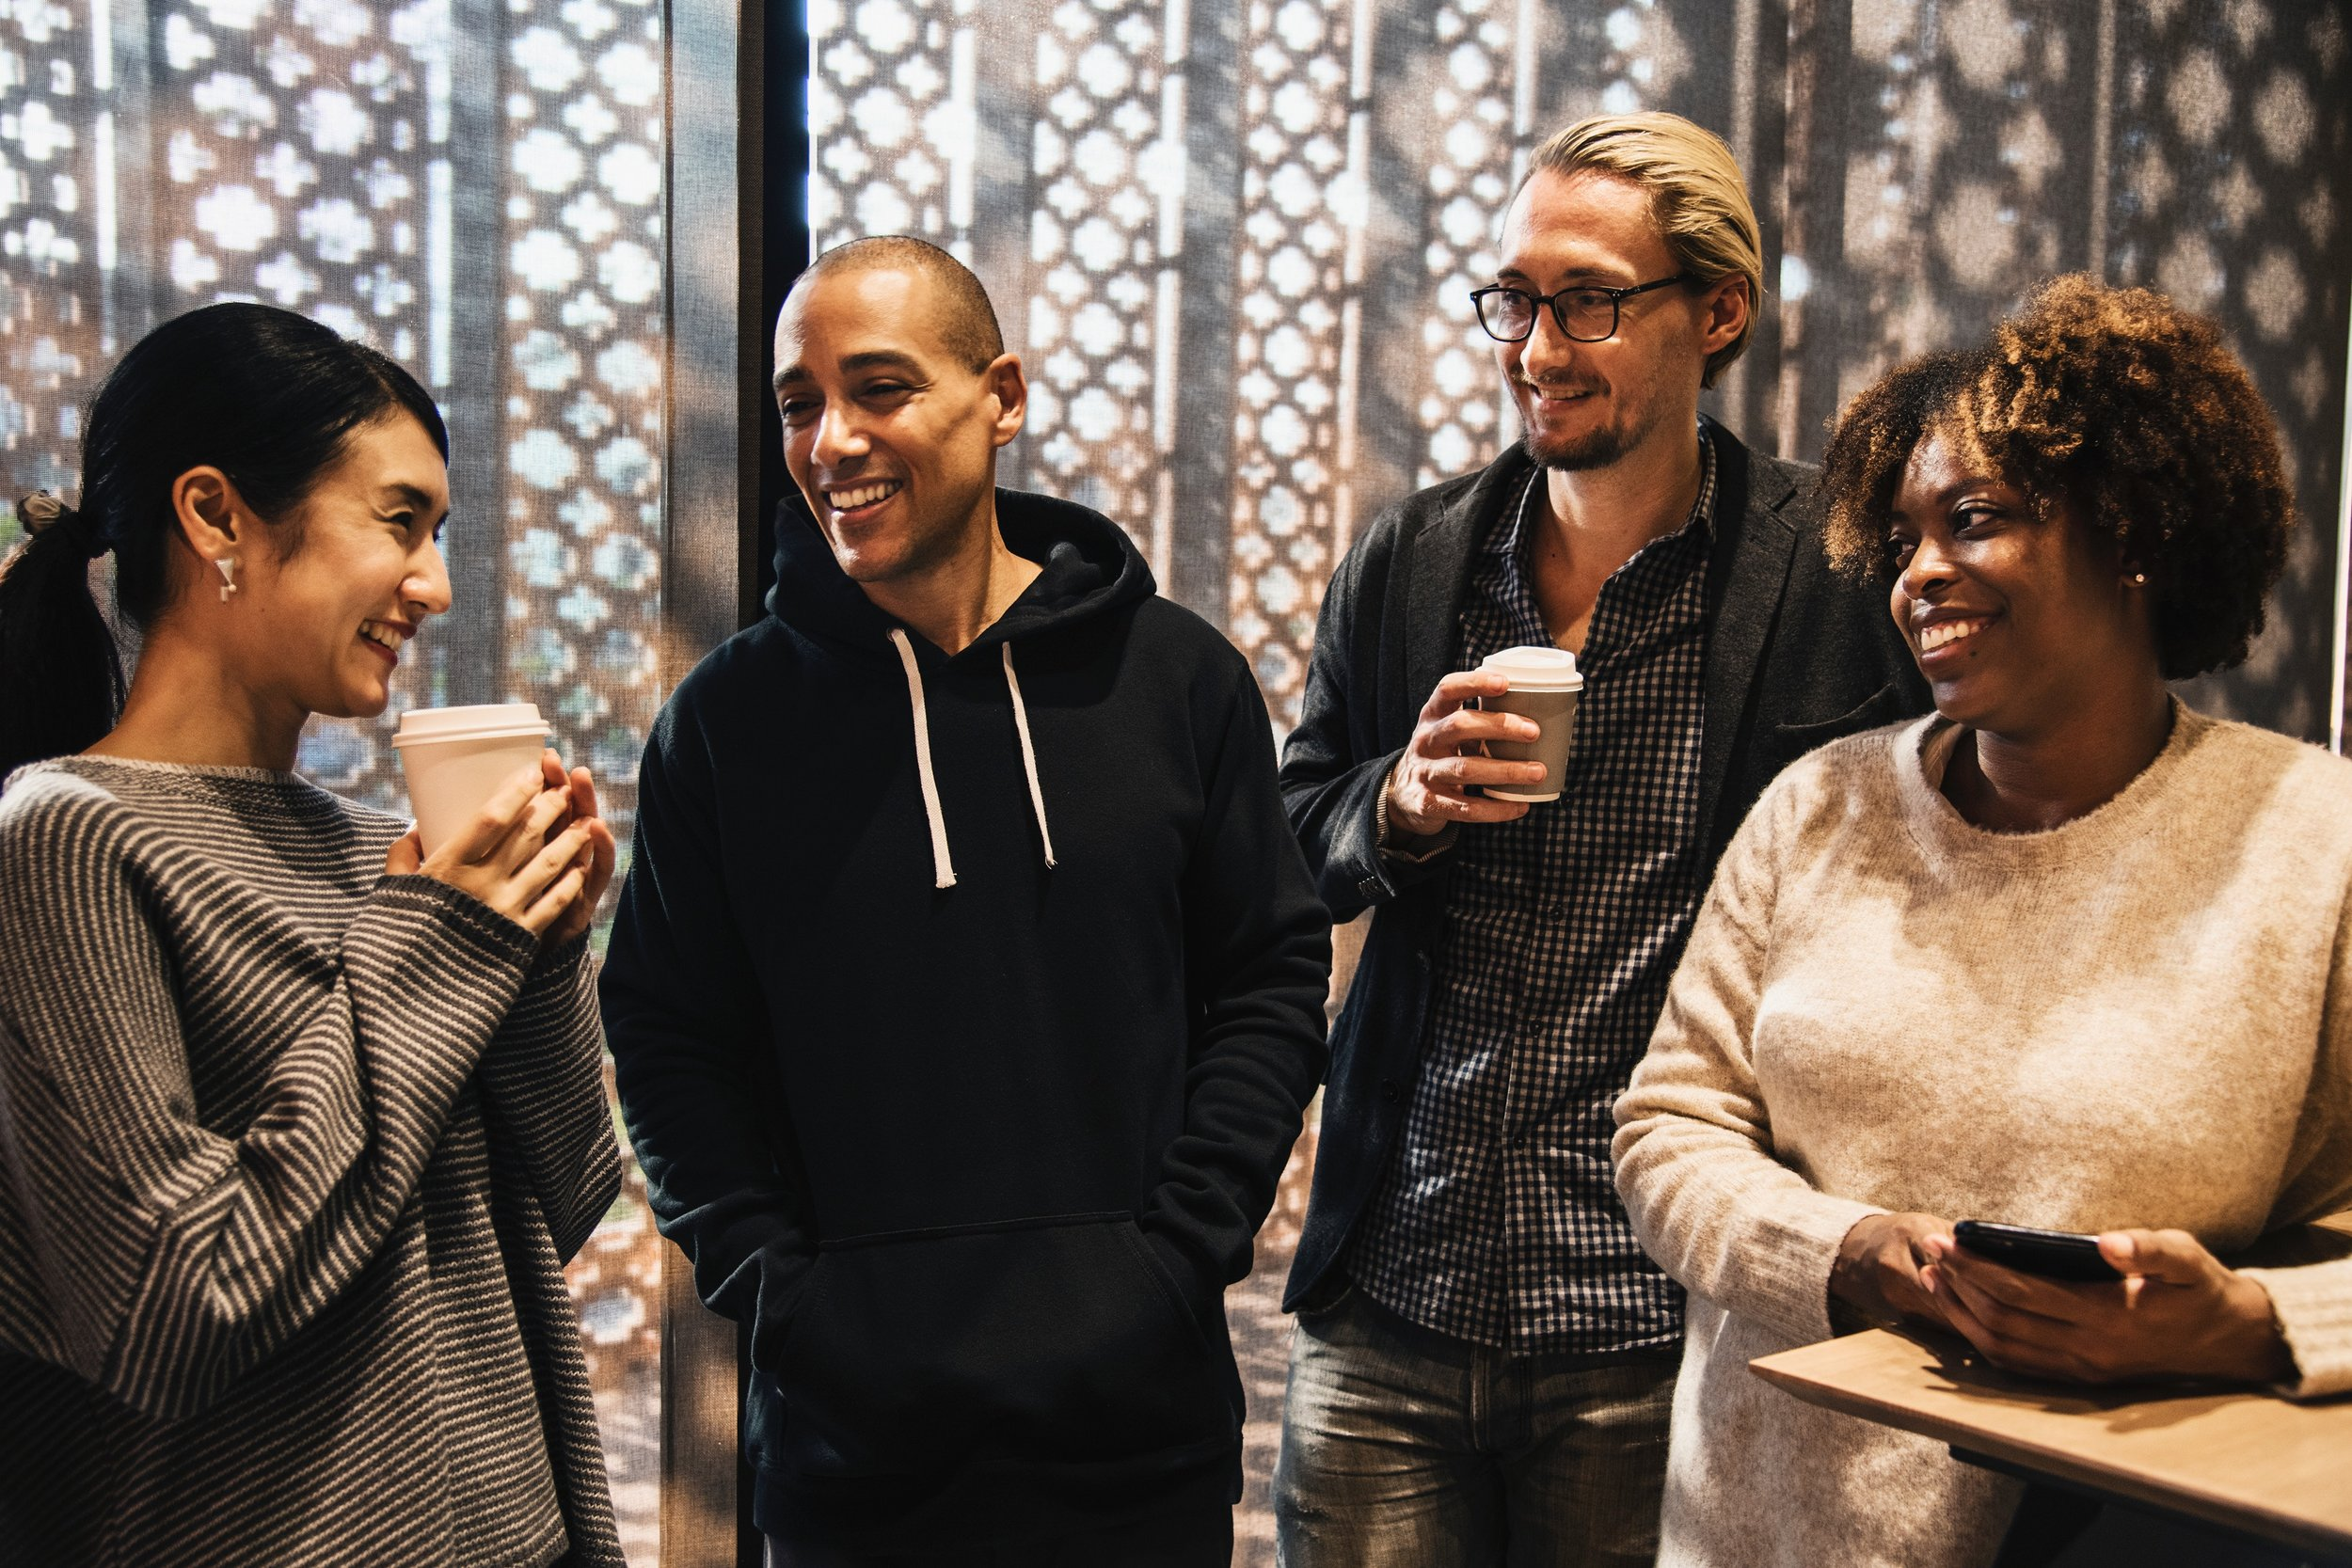 A group of people talking over coffee